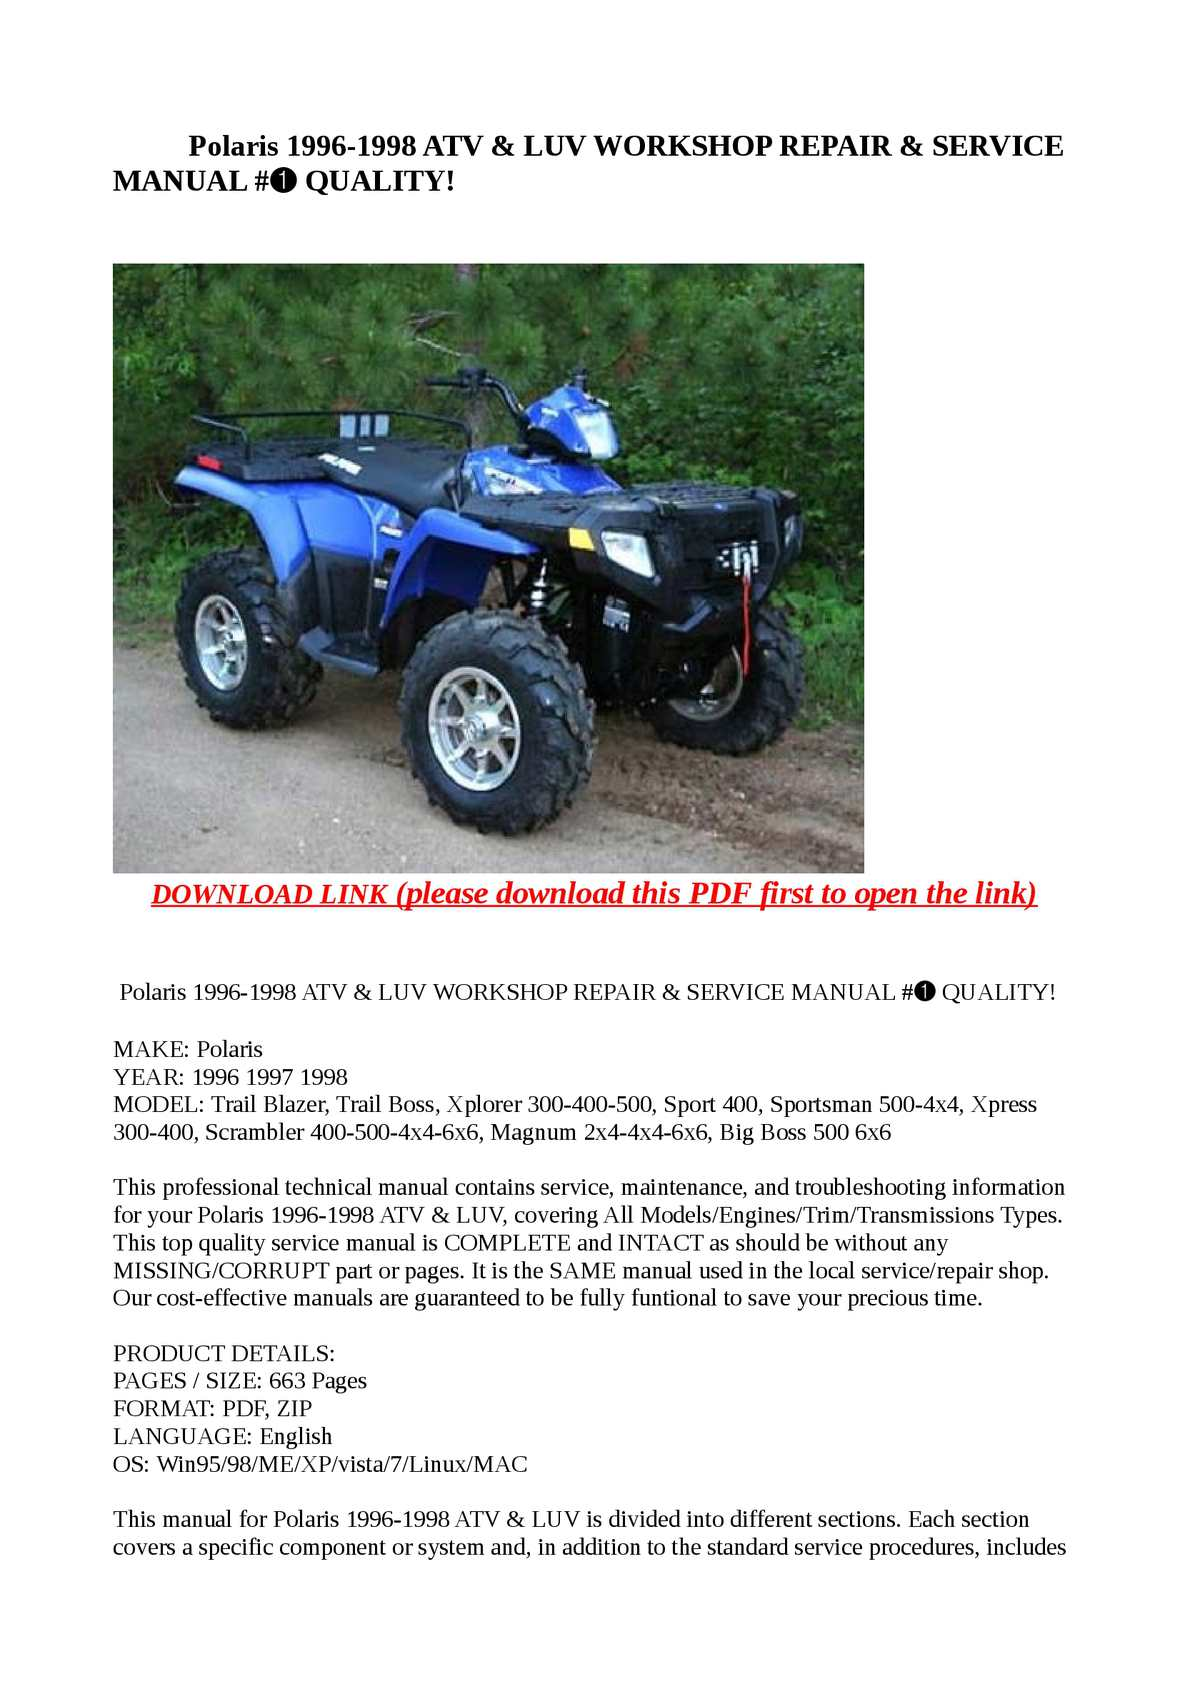 1996 polaris xplorer 300 4x4 service manual rh signaturepedagogies org uk  1996 polaris xplorer 400 service manual pdf 1996 polaris sportsman 400  service ...